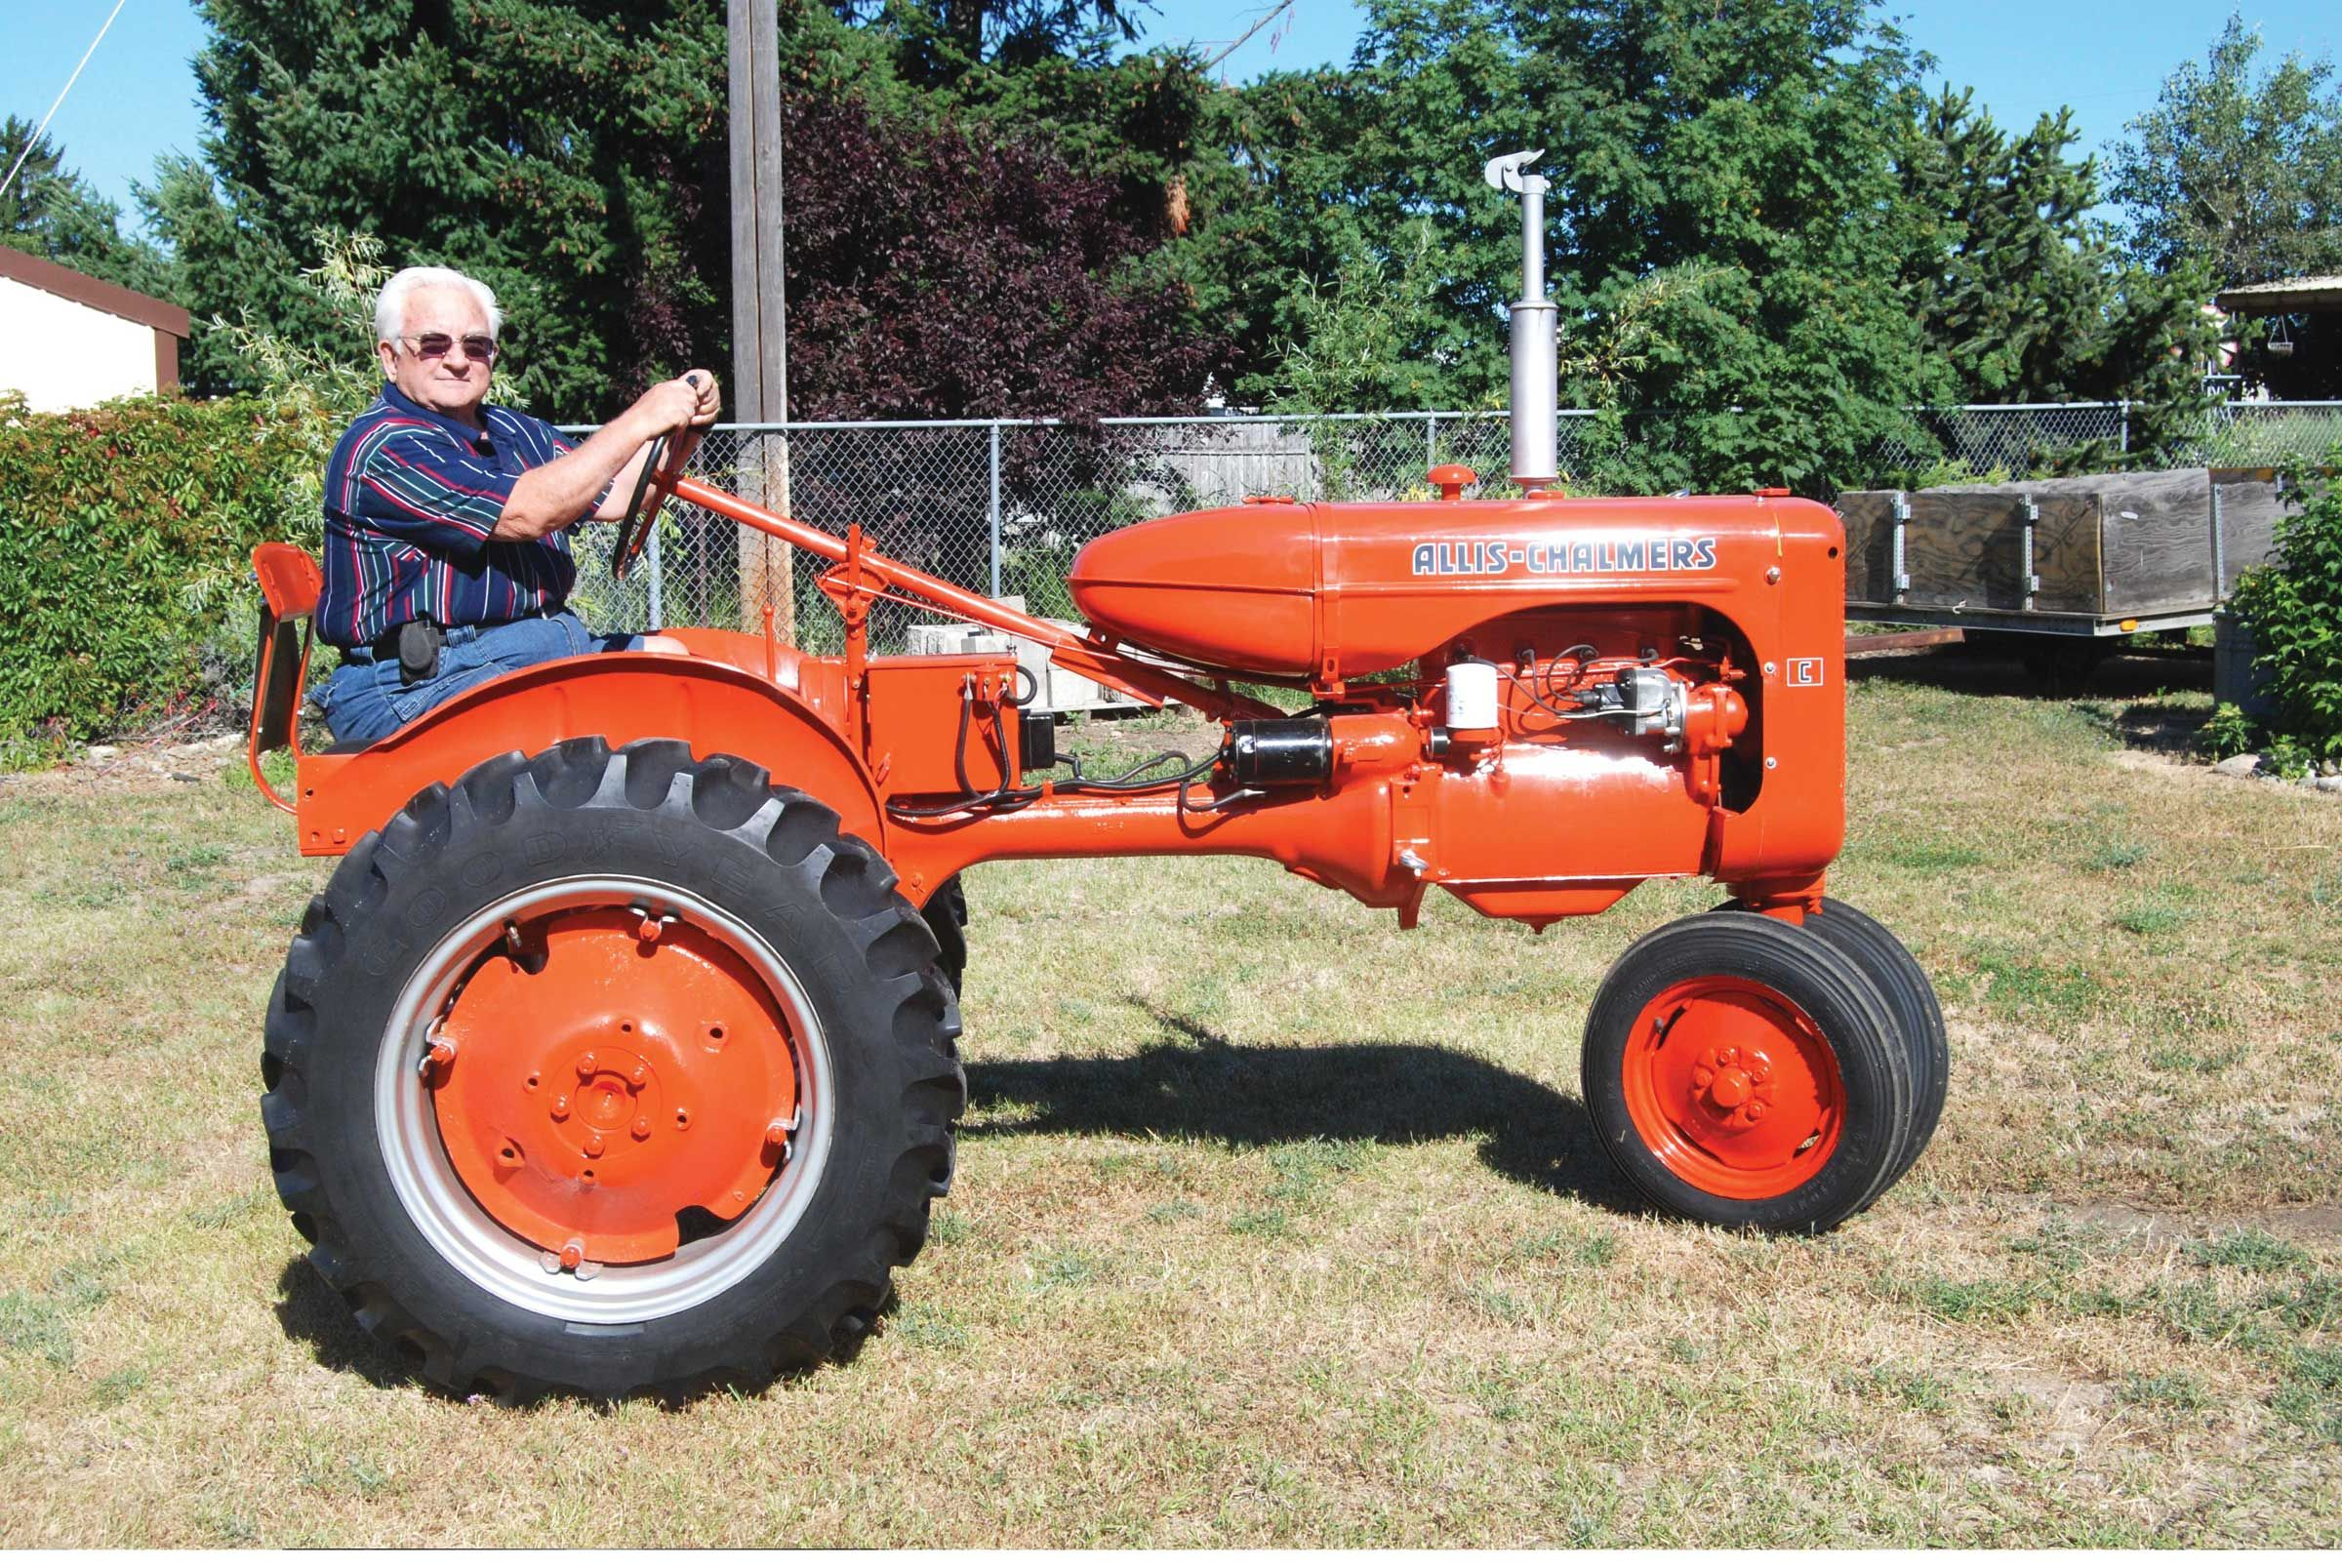 Tackling That First Tractor Restoration Project: An Allis ...